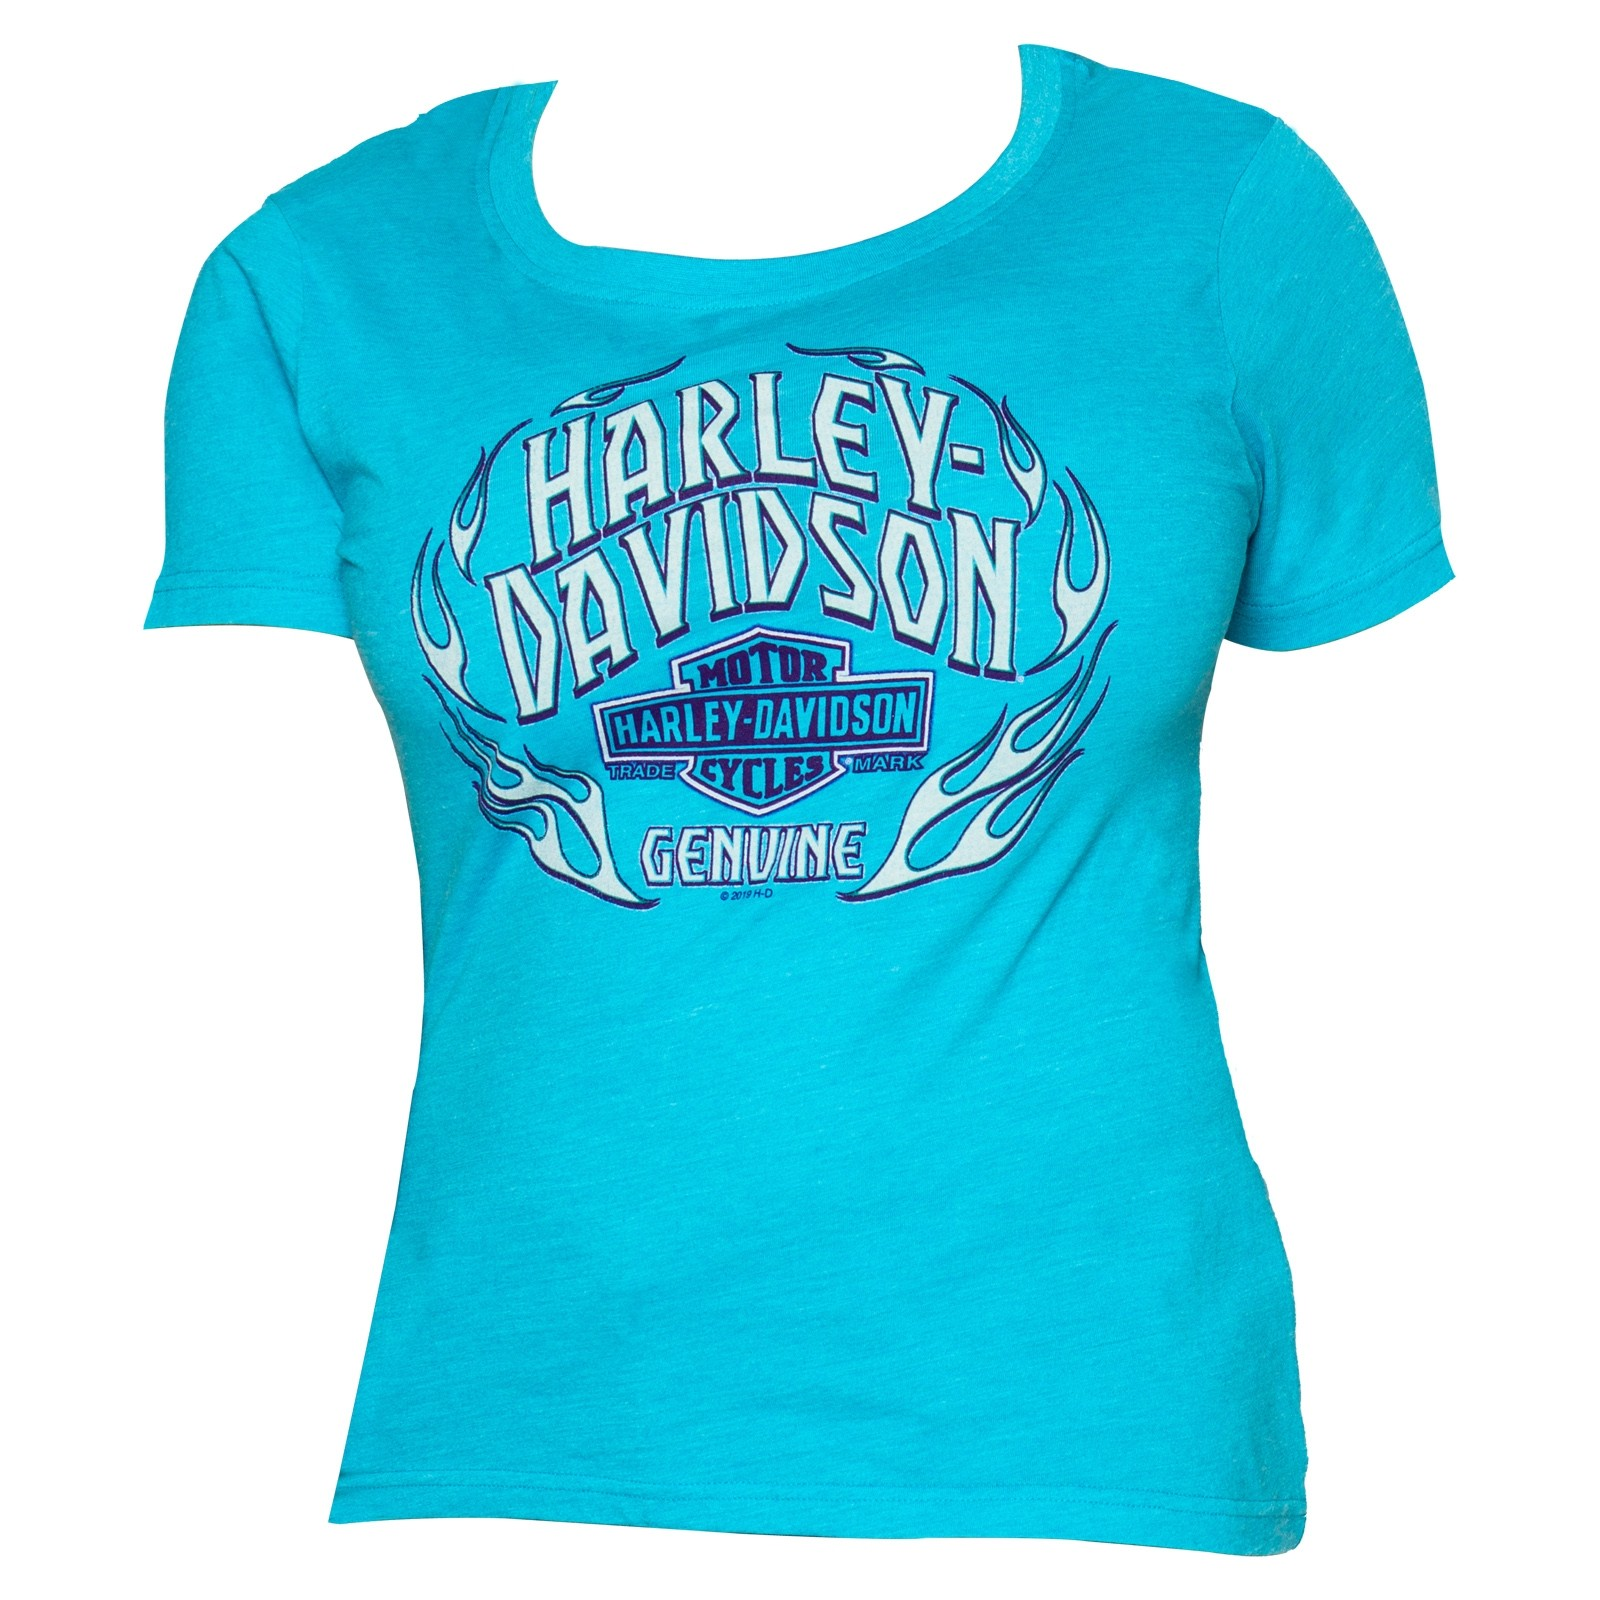 Harley-Davidson Women's Short-Sleeve Scoop Neck Graphic T-Shirt - Yokosuka | Flashpoint